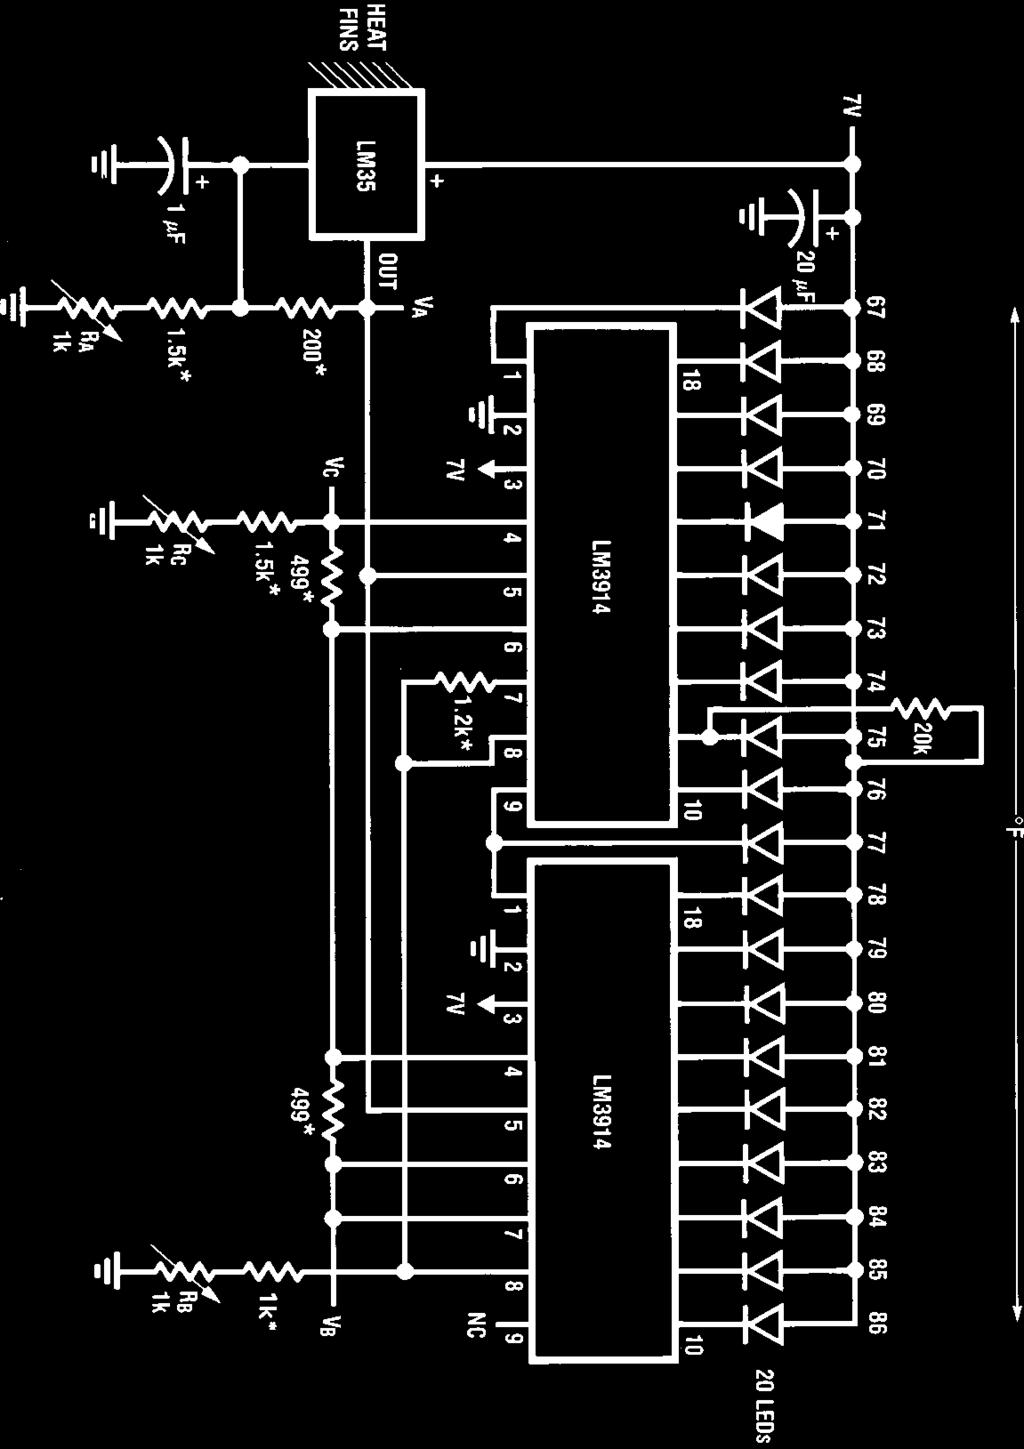 Lampiran Config Adc Single Prescaler Auto Reference Avcc Pdf 2n2907 In The Reverse Unit Project Schematic Circuit Diagram And Datasheet Typical Applications Continued E1 Or 2 Film Resistor Trim R B For